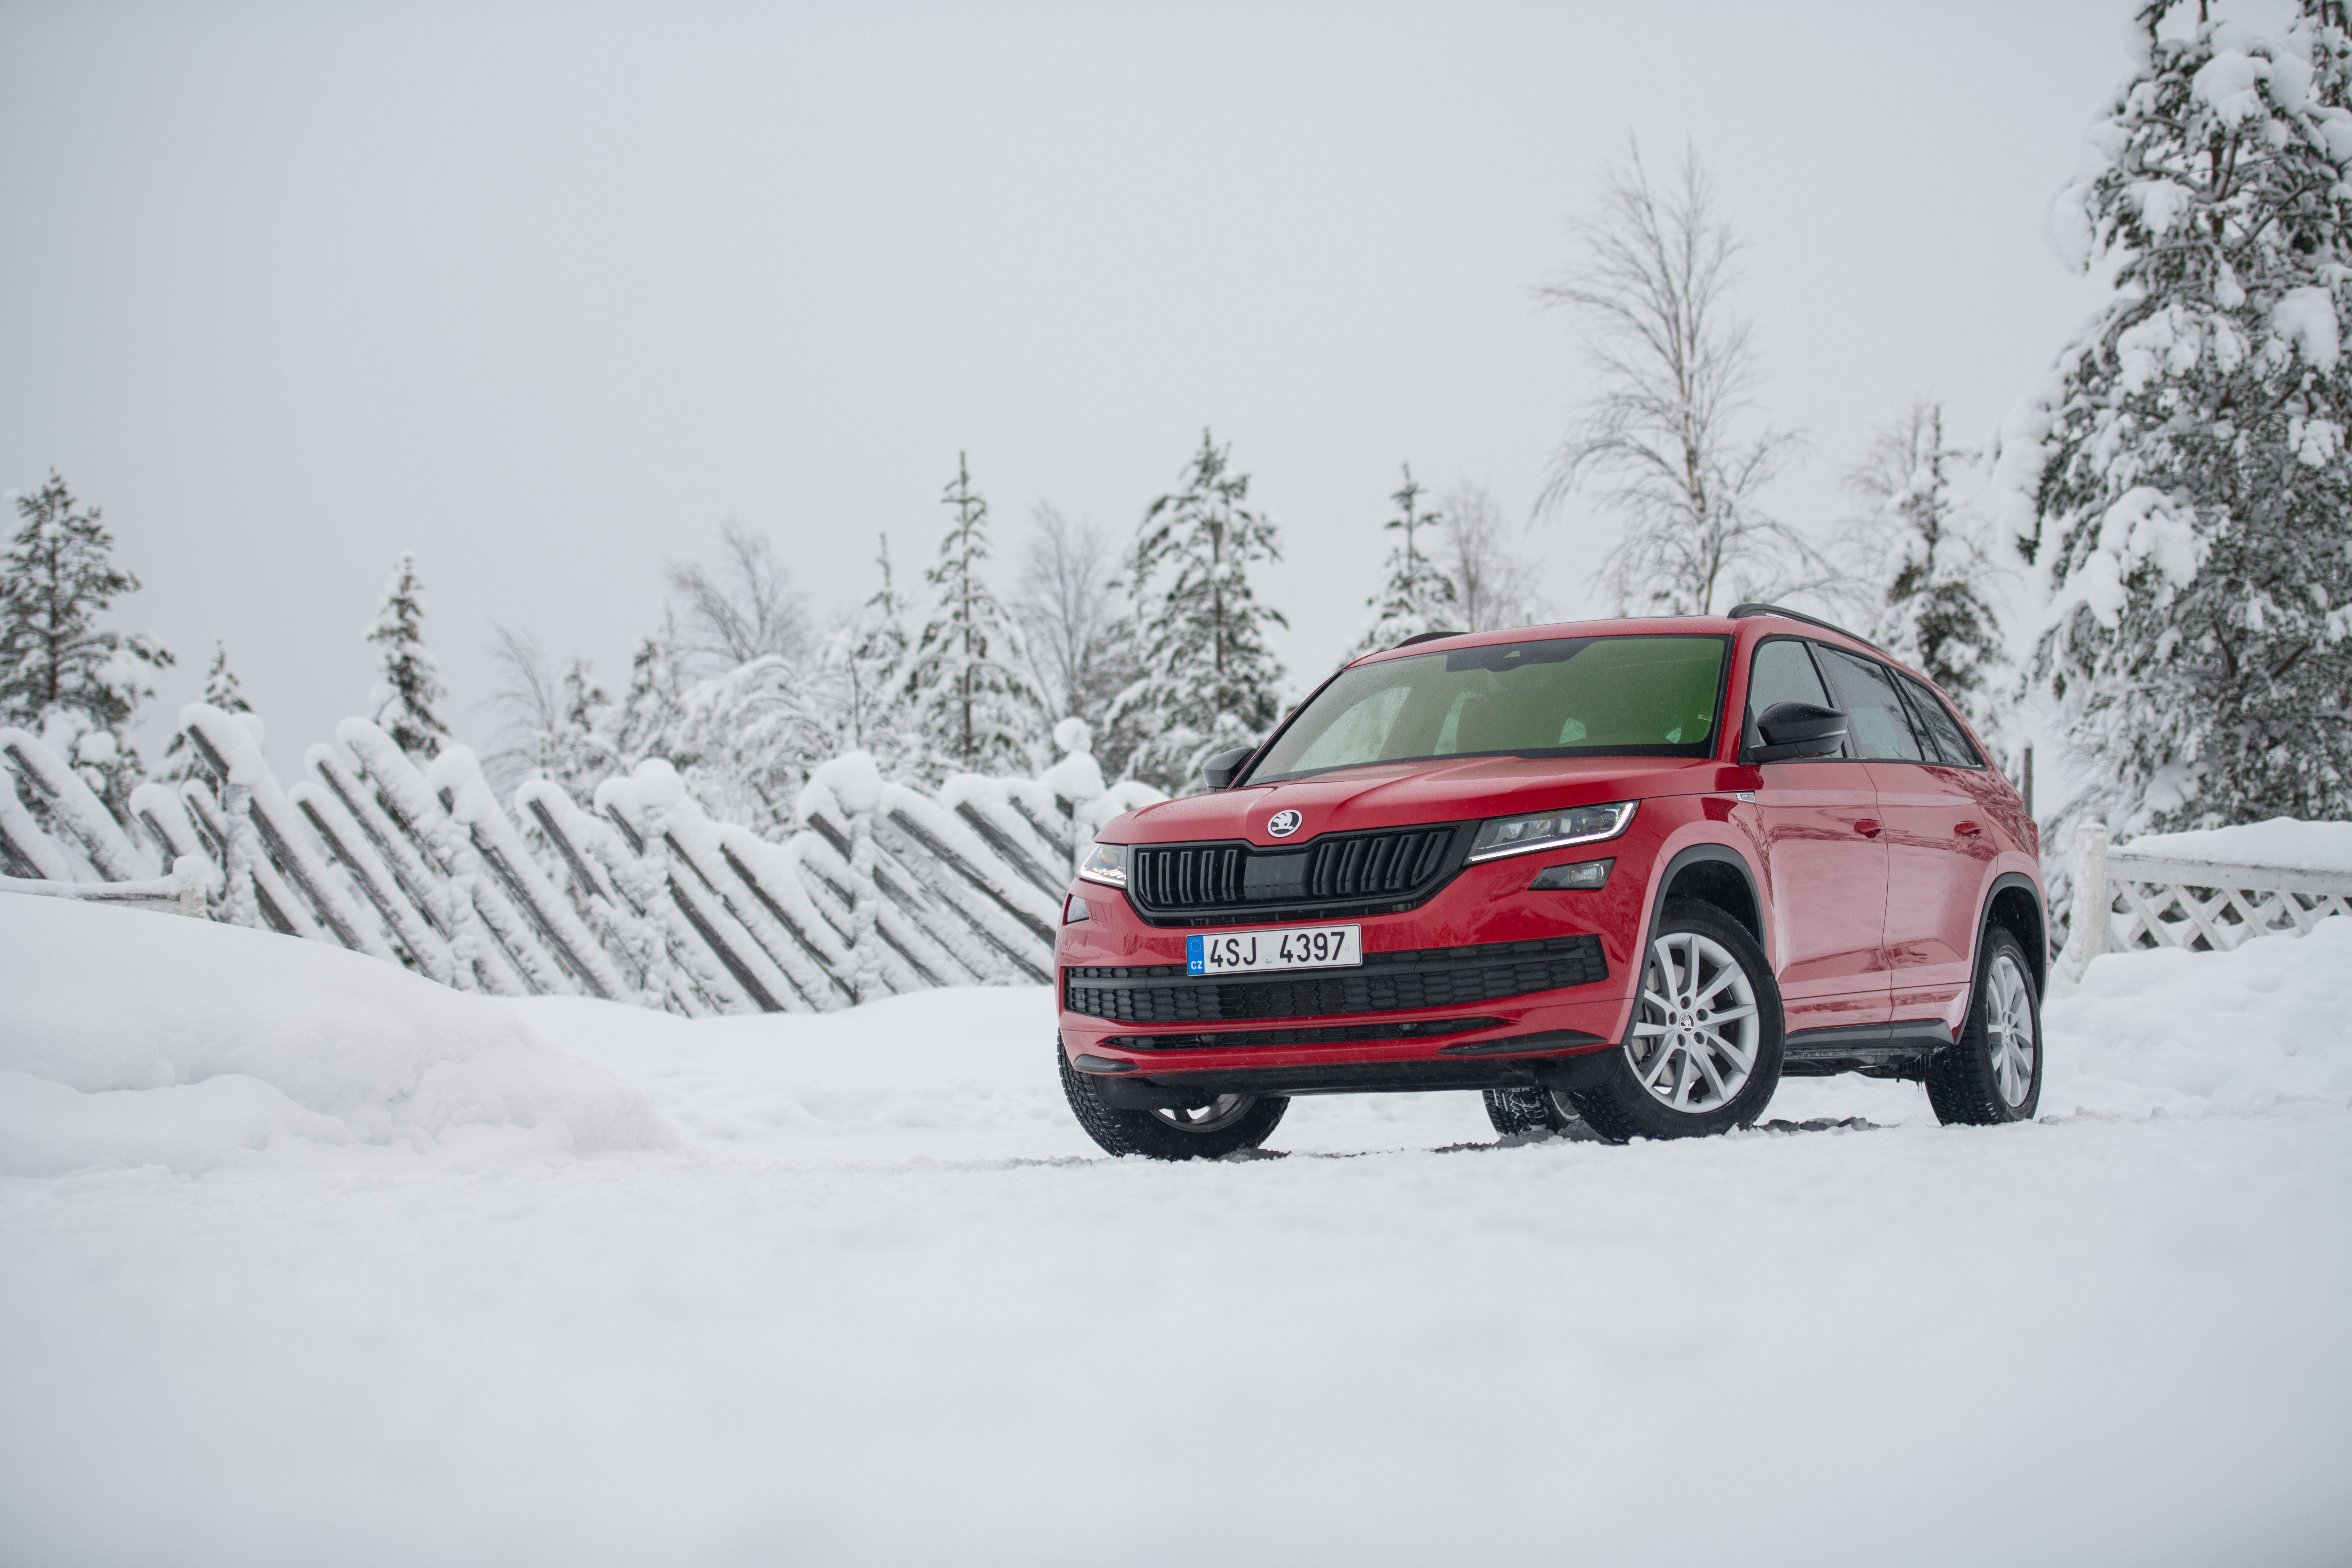 skoda-4x4-review-winter-jpg